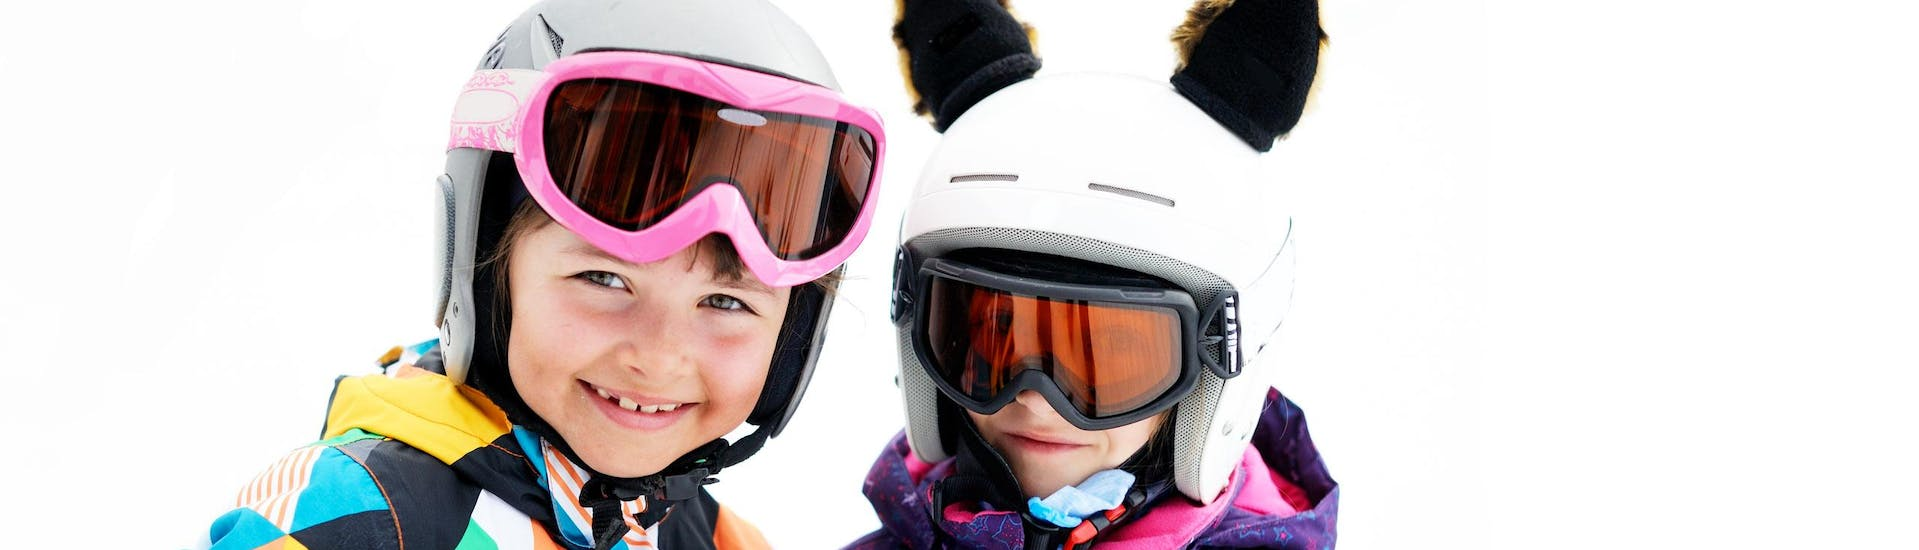 Two young children smiling at the camera during one of the Kids Ski Lessons (5-12 y.) for Beginners - All in One organised by Escuela Española de Esquí y Snowboard Sierra Nevada.